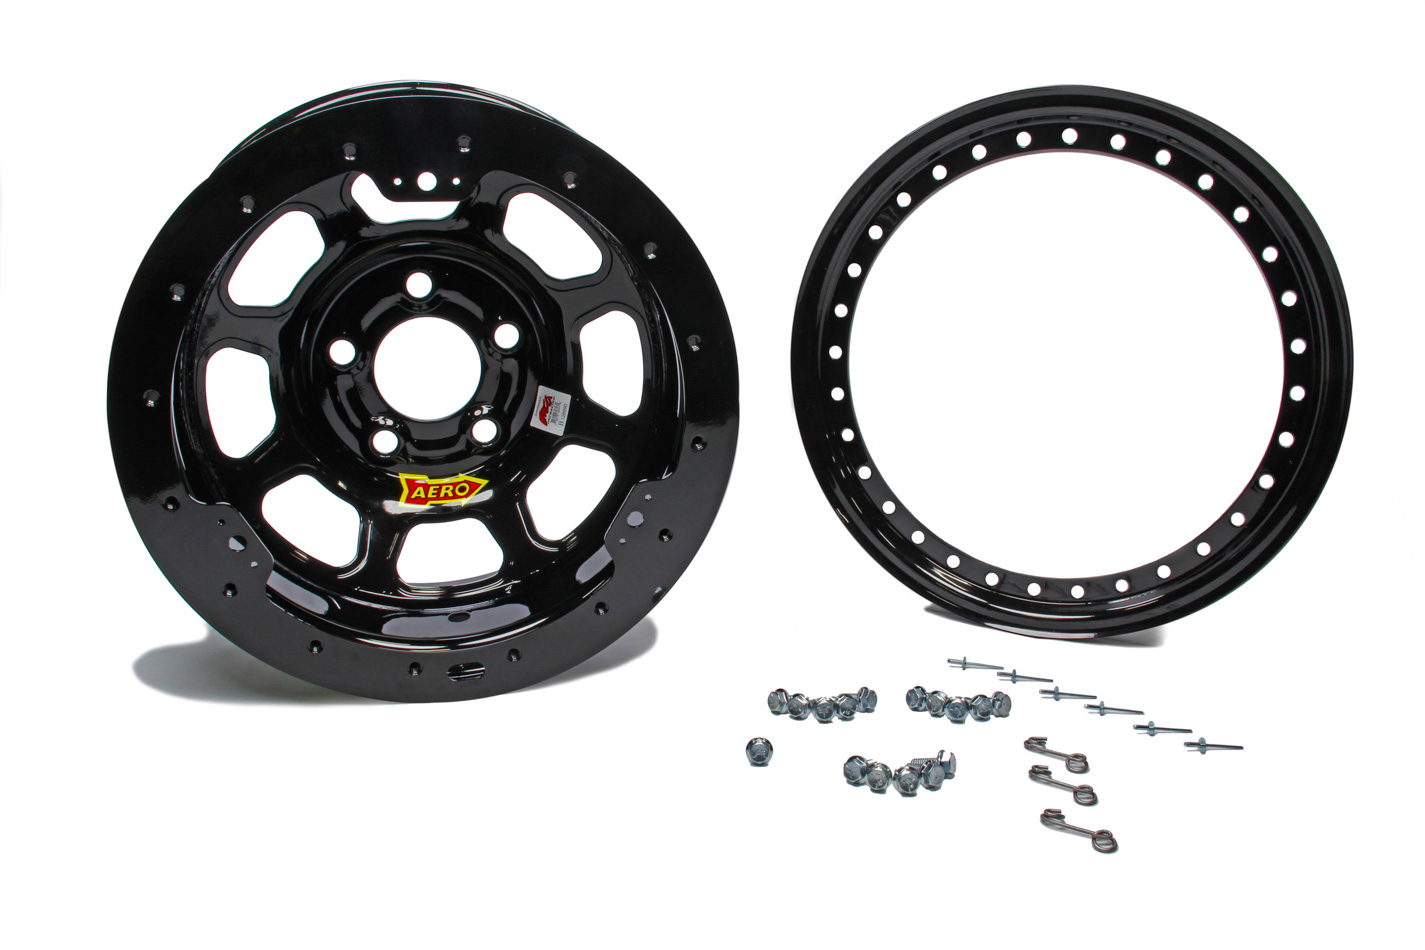 Aero Race 13x8 3in. 4.25 Black Beadlock Wheel